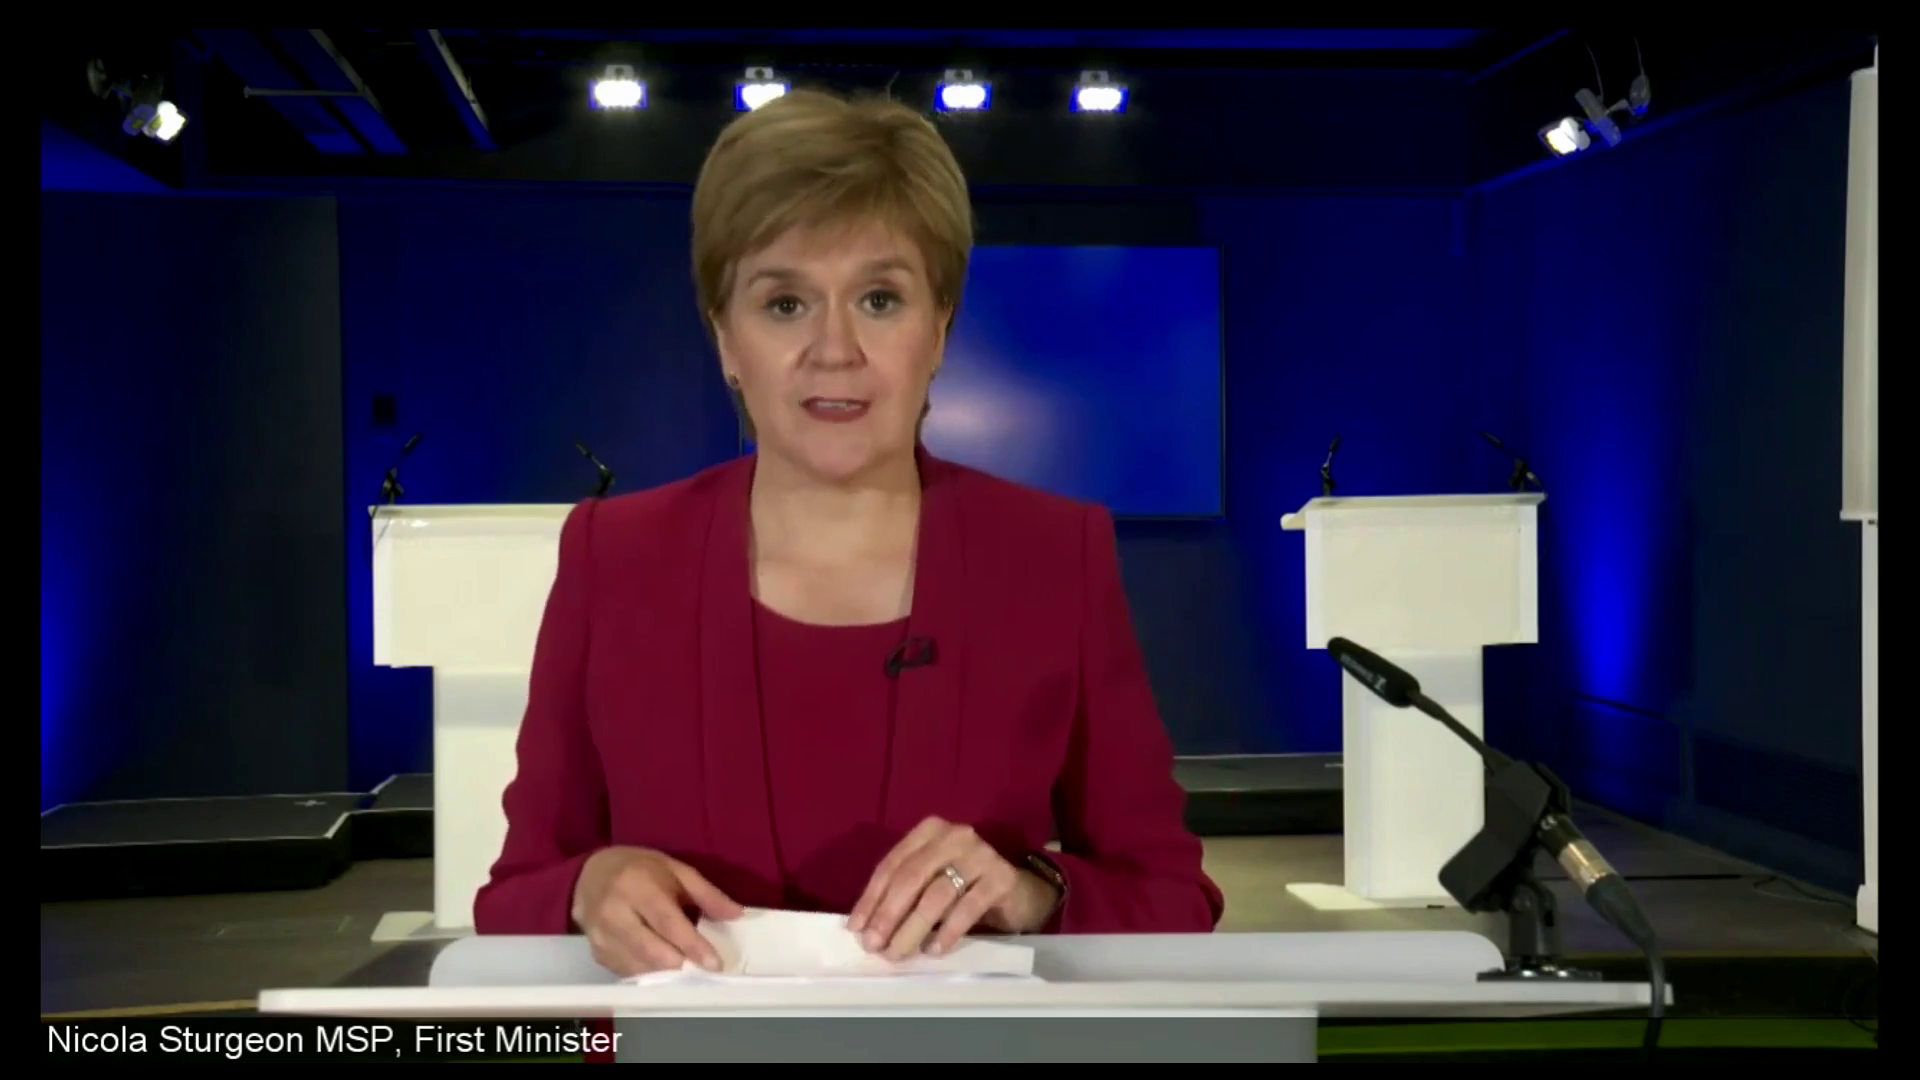 First Minister's Statement: COVID-19 Update